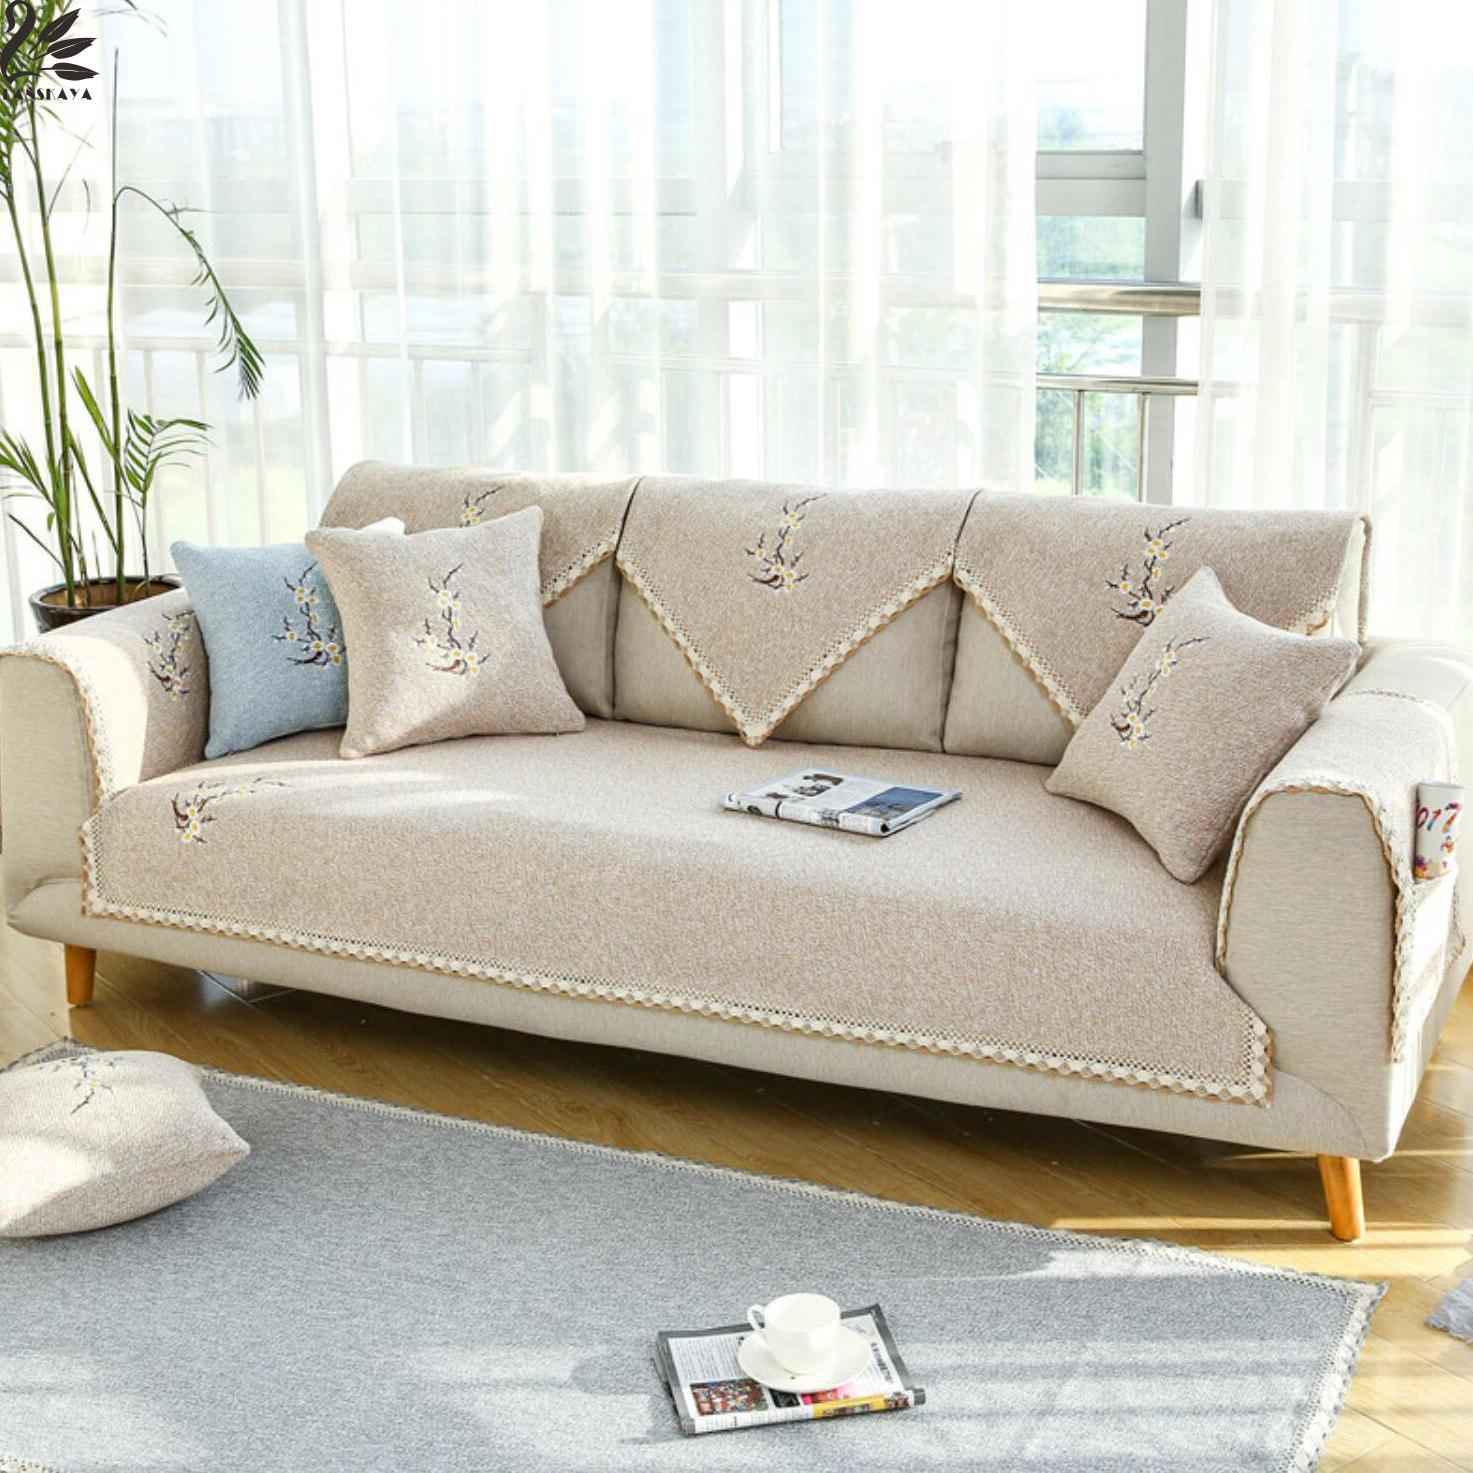 Cream Cotton Embroidery Positioning Cushion Simple Modern Sofa Sleeve Cover Slipcovers Leather Sofas Fundas In From Home Garden On